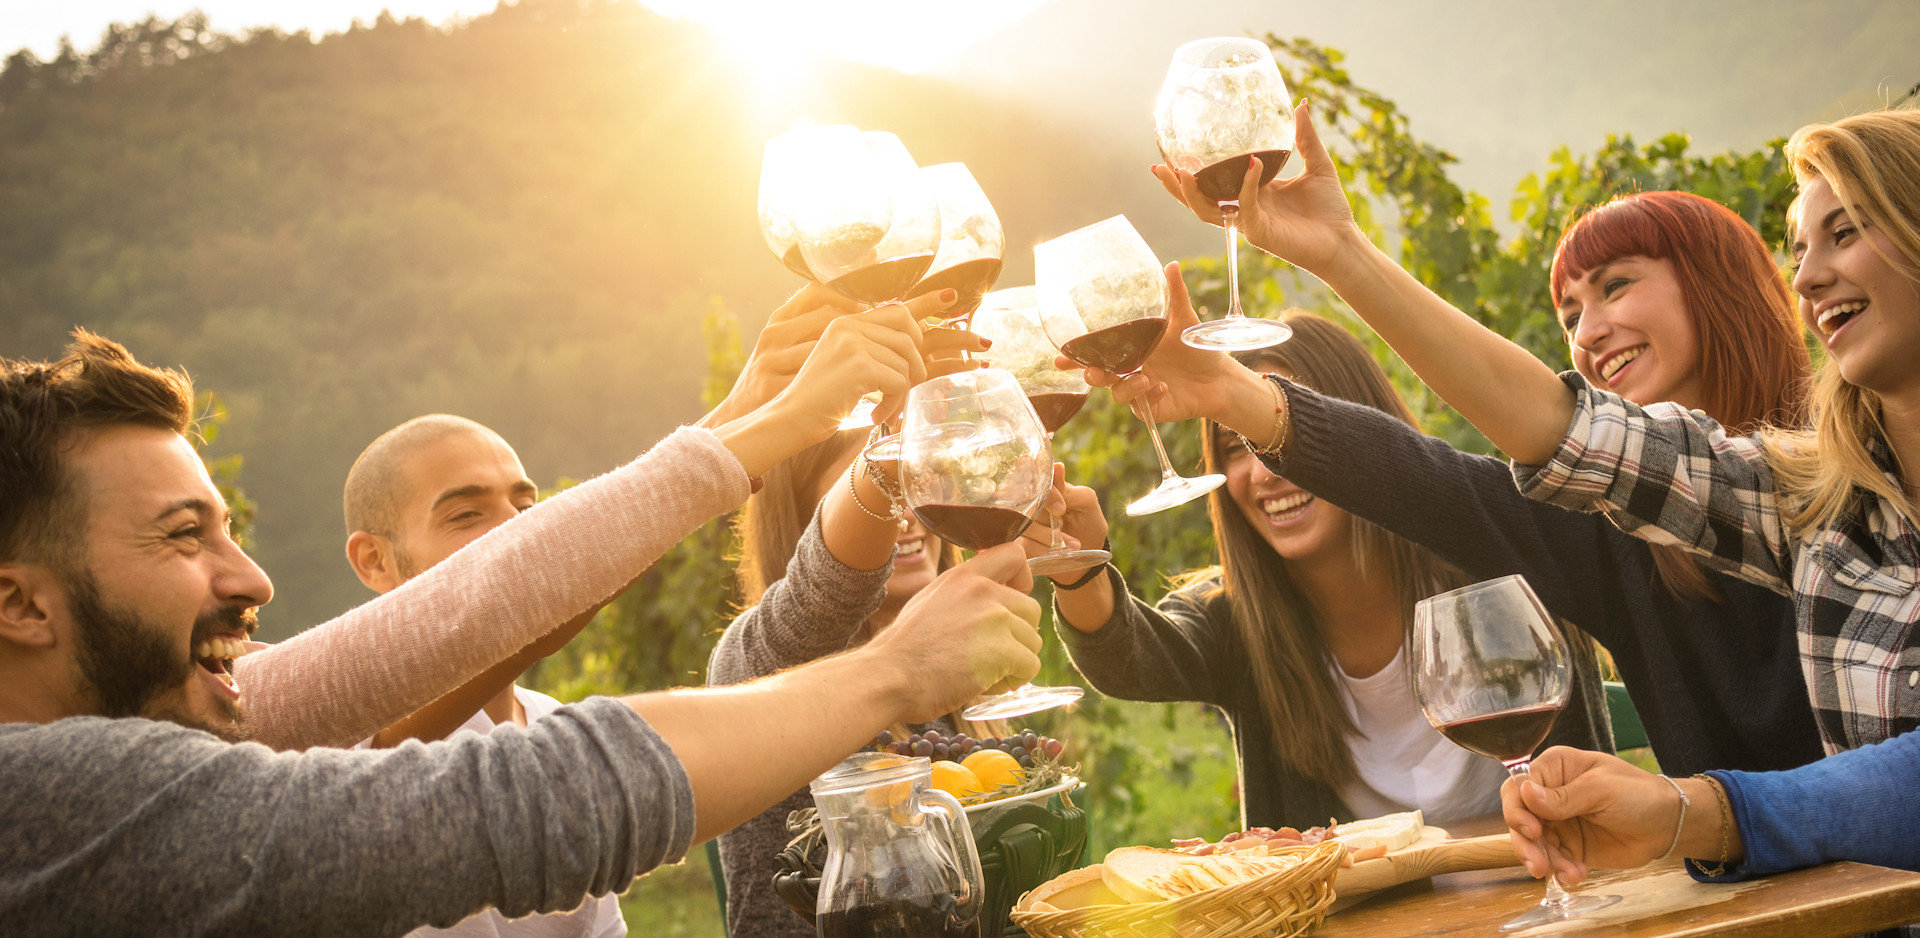 Group of friends enjoying a wine tasting at a winery